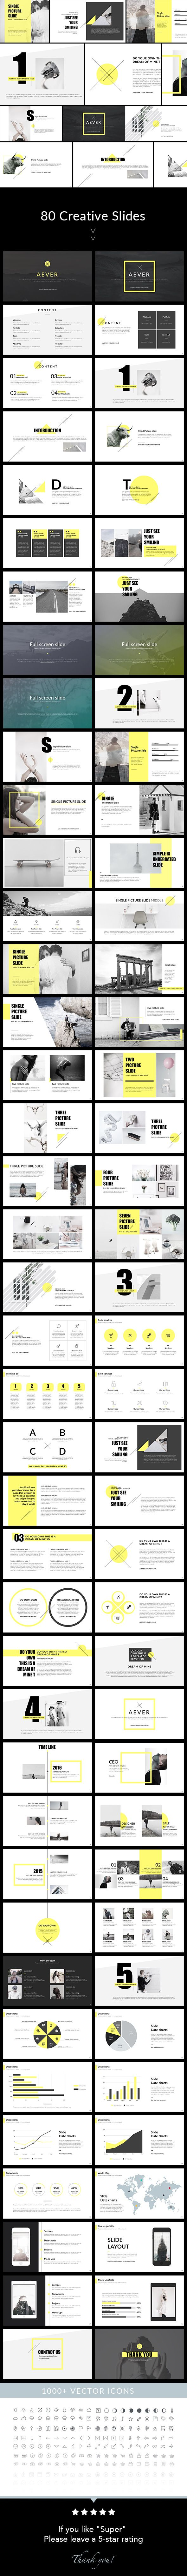 AEVER - Clean & Simple Keynote Template  #clean #infographic #practical #yellow